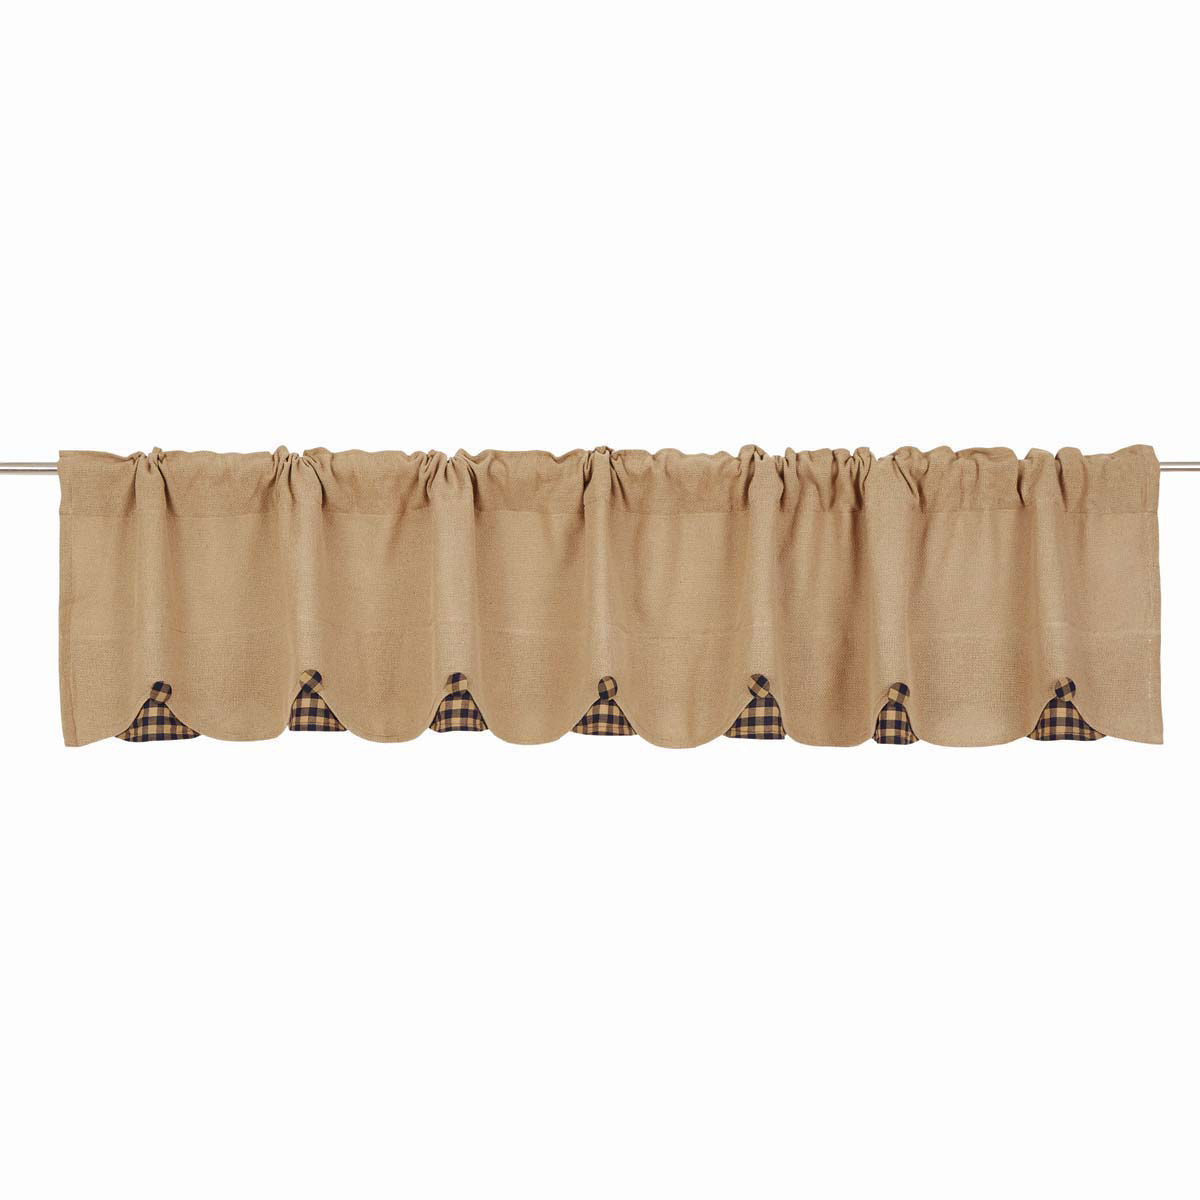 BURLAP NATURAL Valance w/Navy Check - 16x90 - Country Farmhouse - VHC Brands